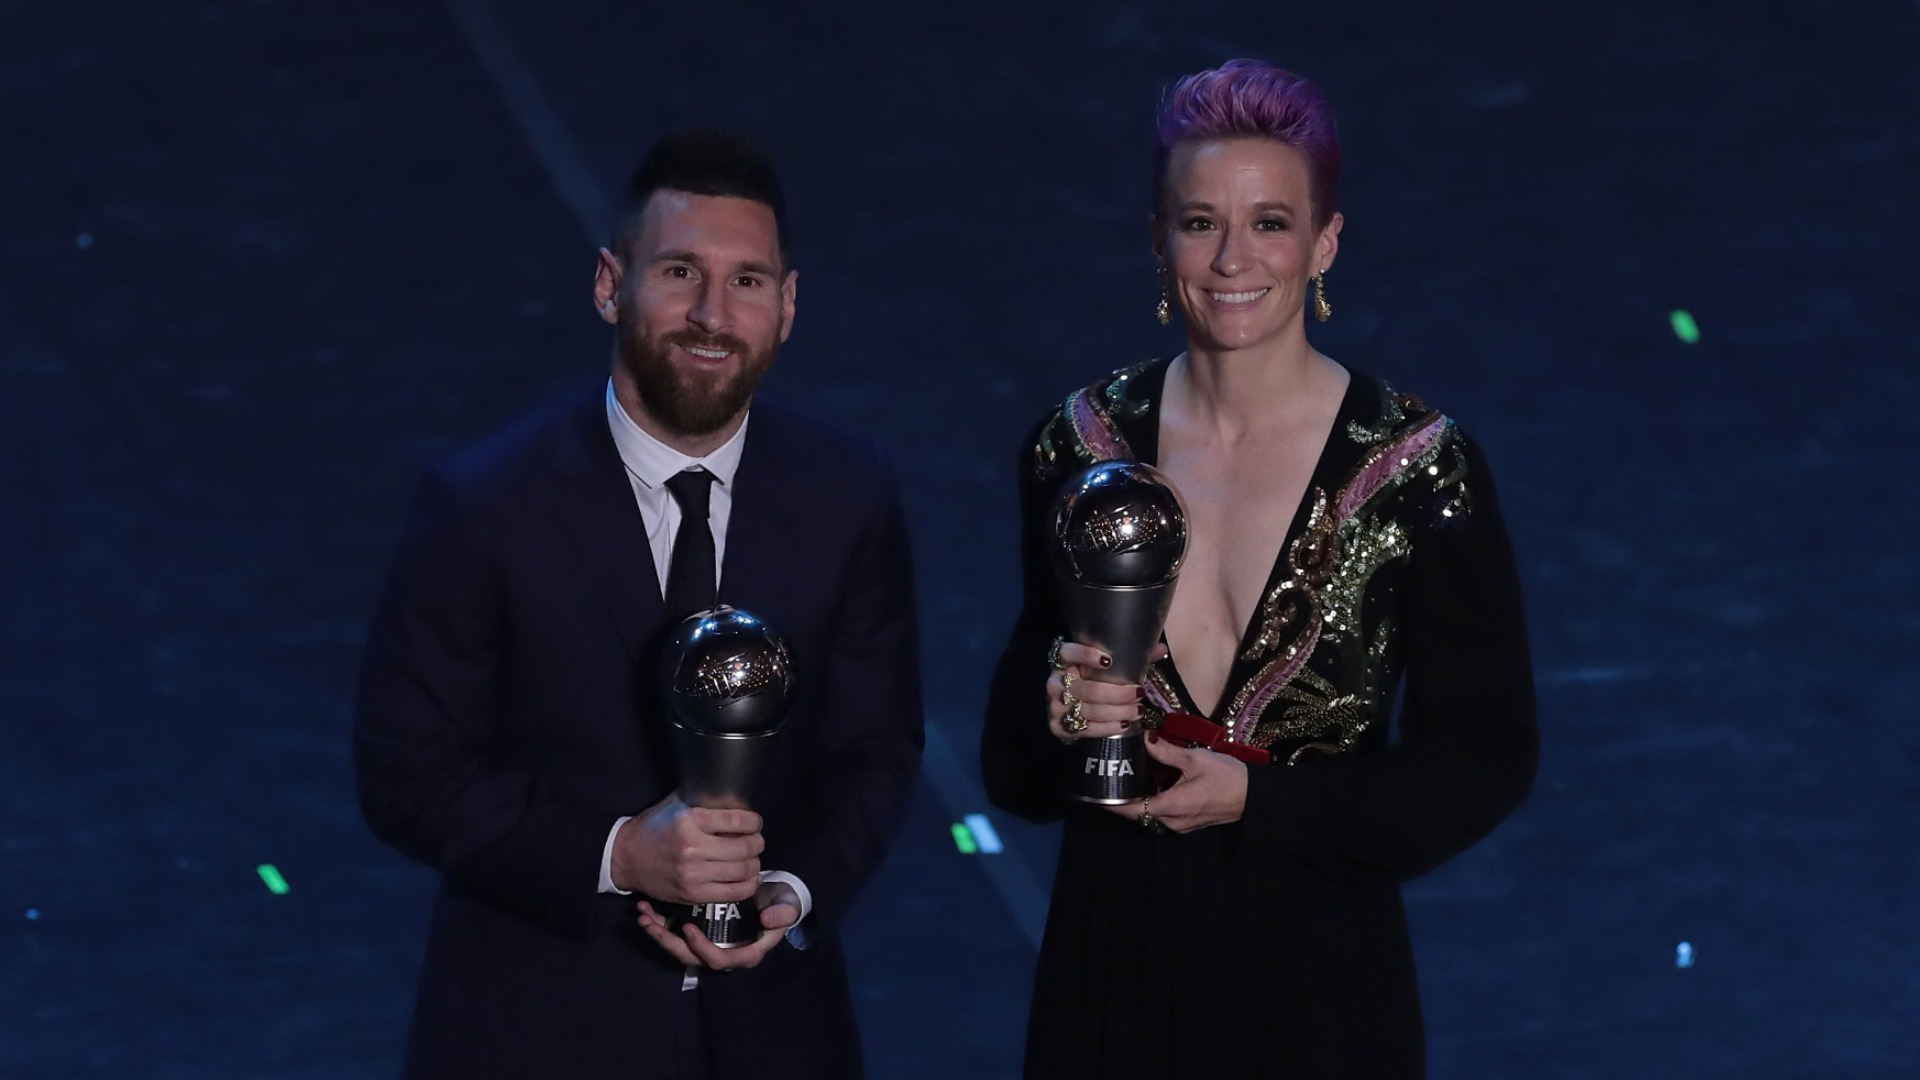 FIFA books in The Best awards despite Ballon d'Or absence in 'extraordinary year'